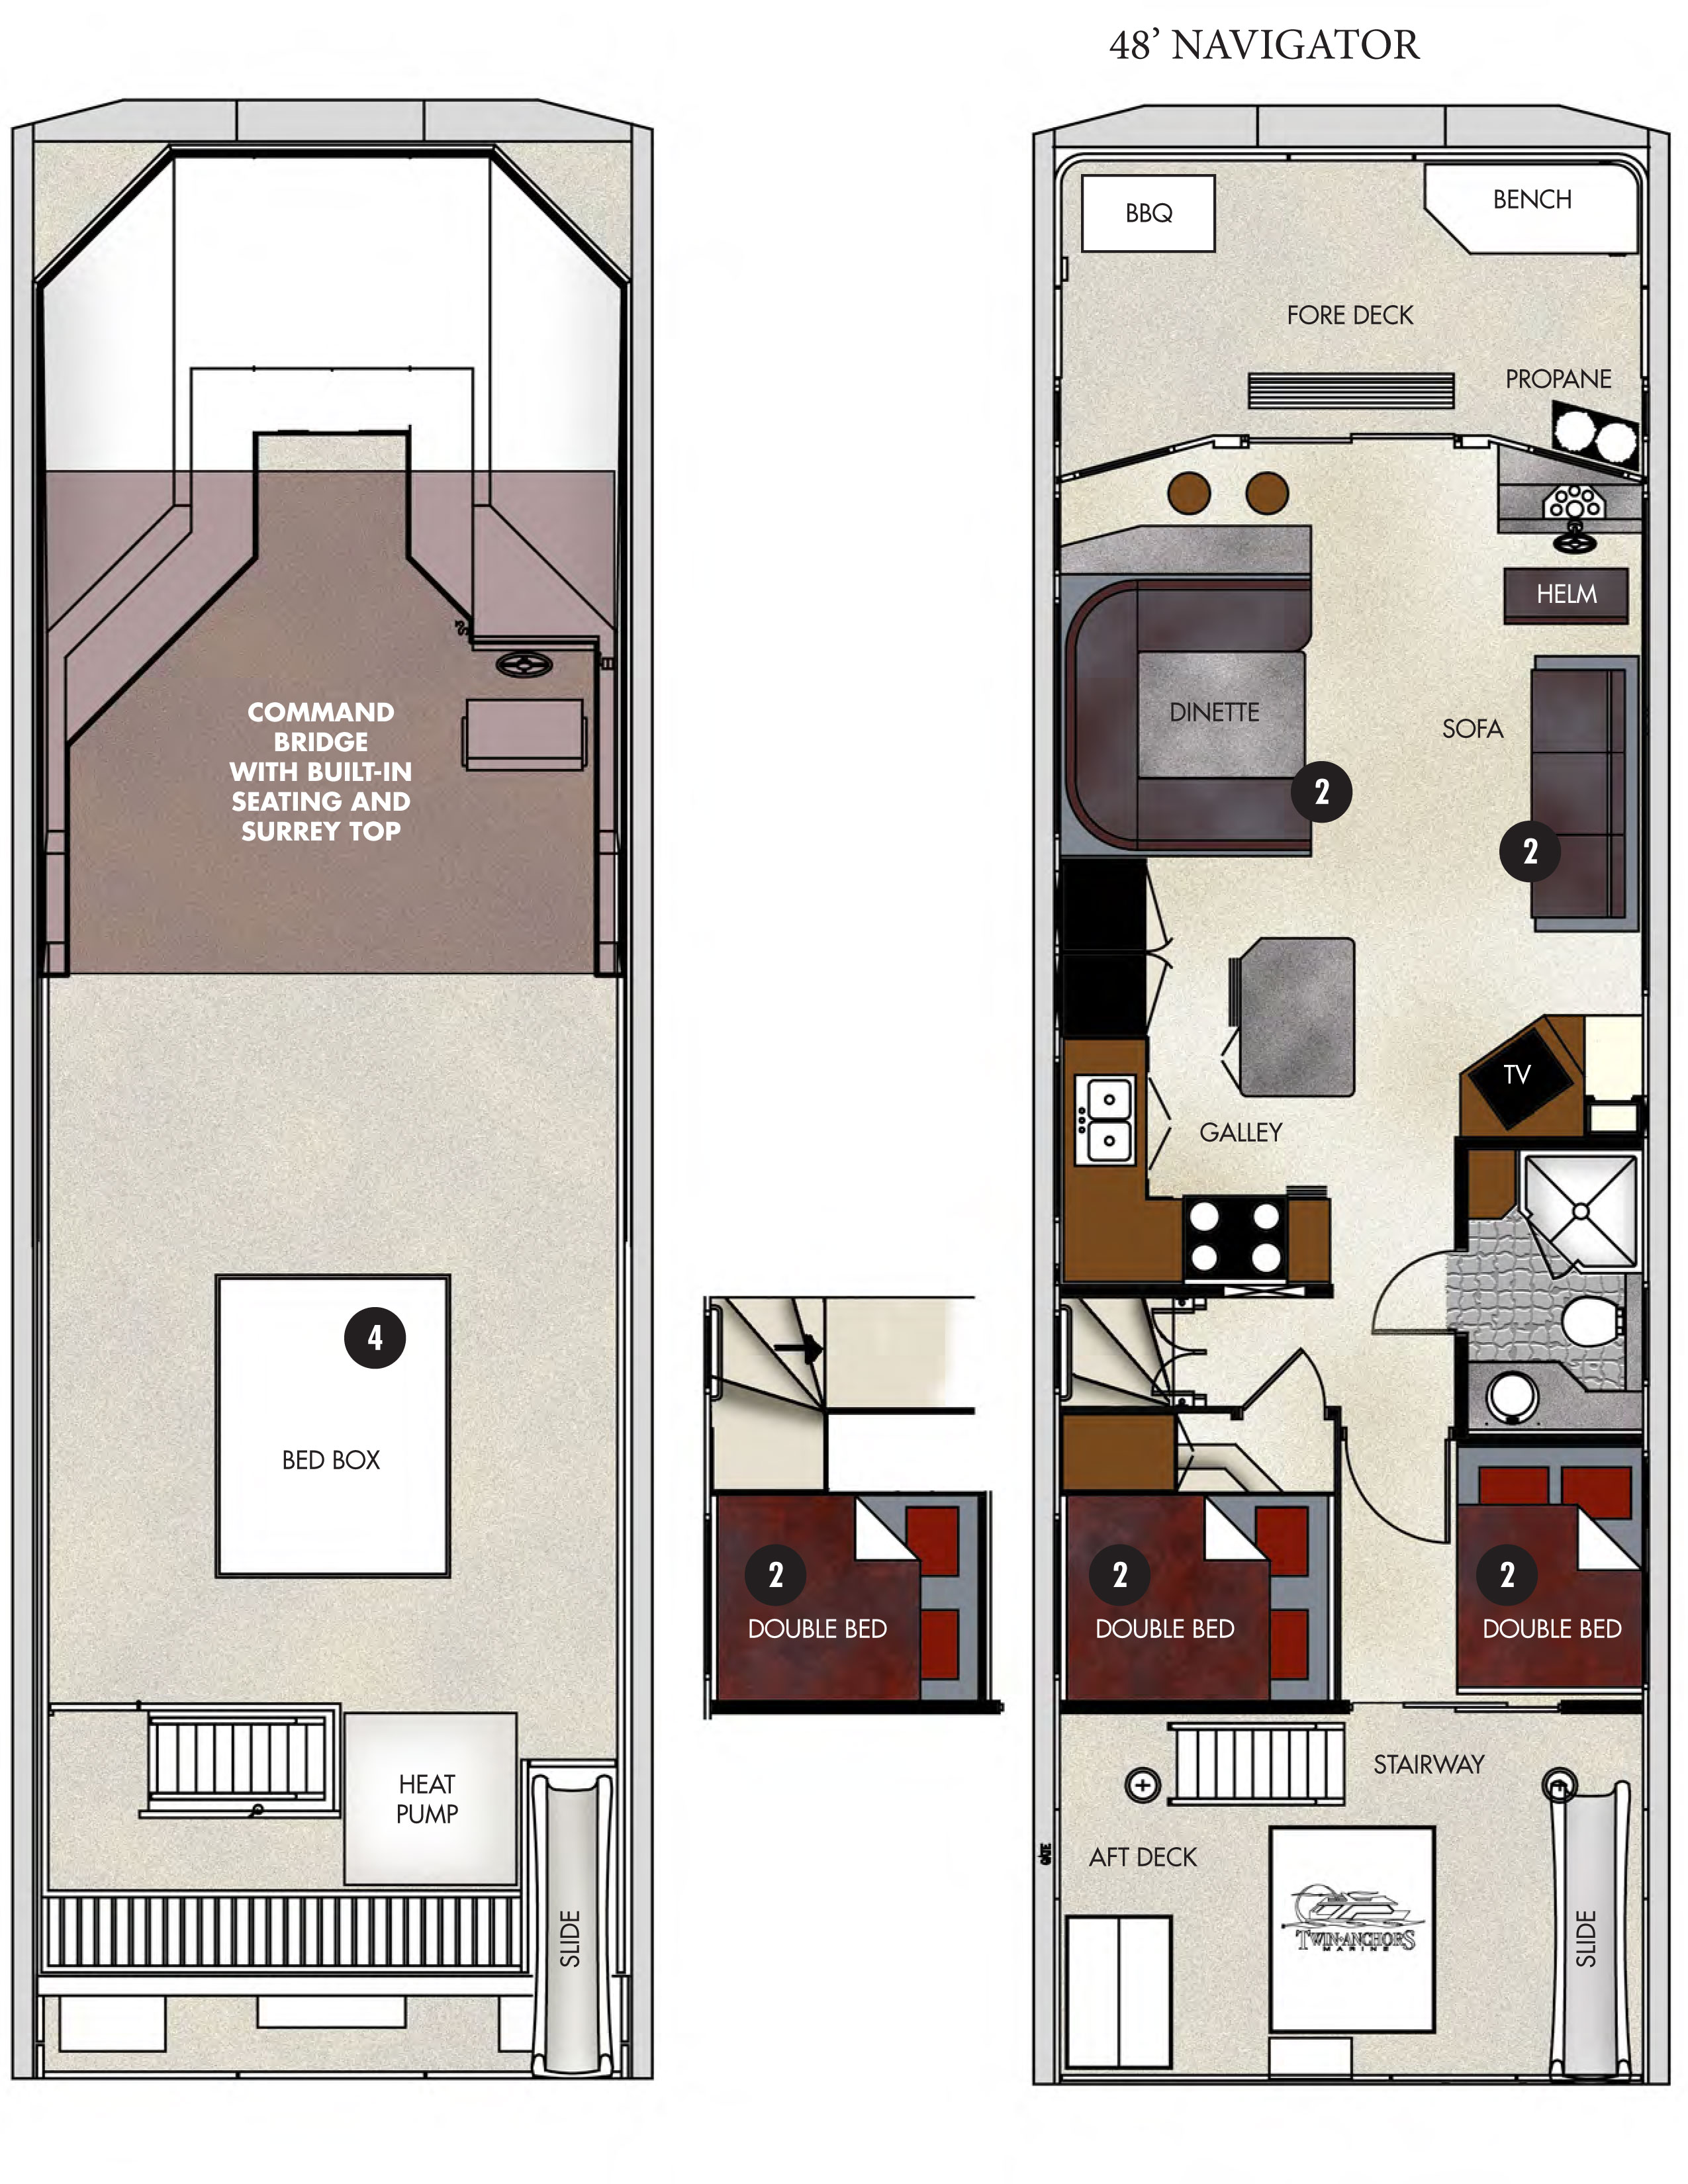 48ft Navigator Houseboat Floor Plan